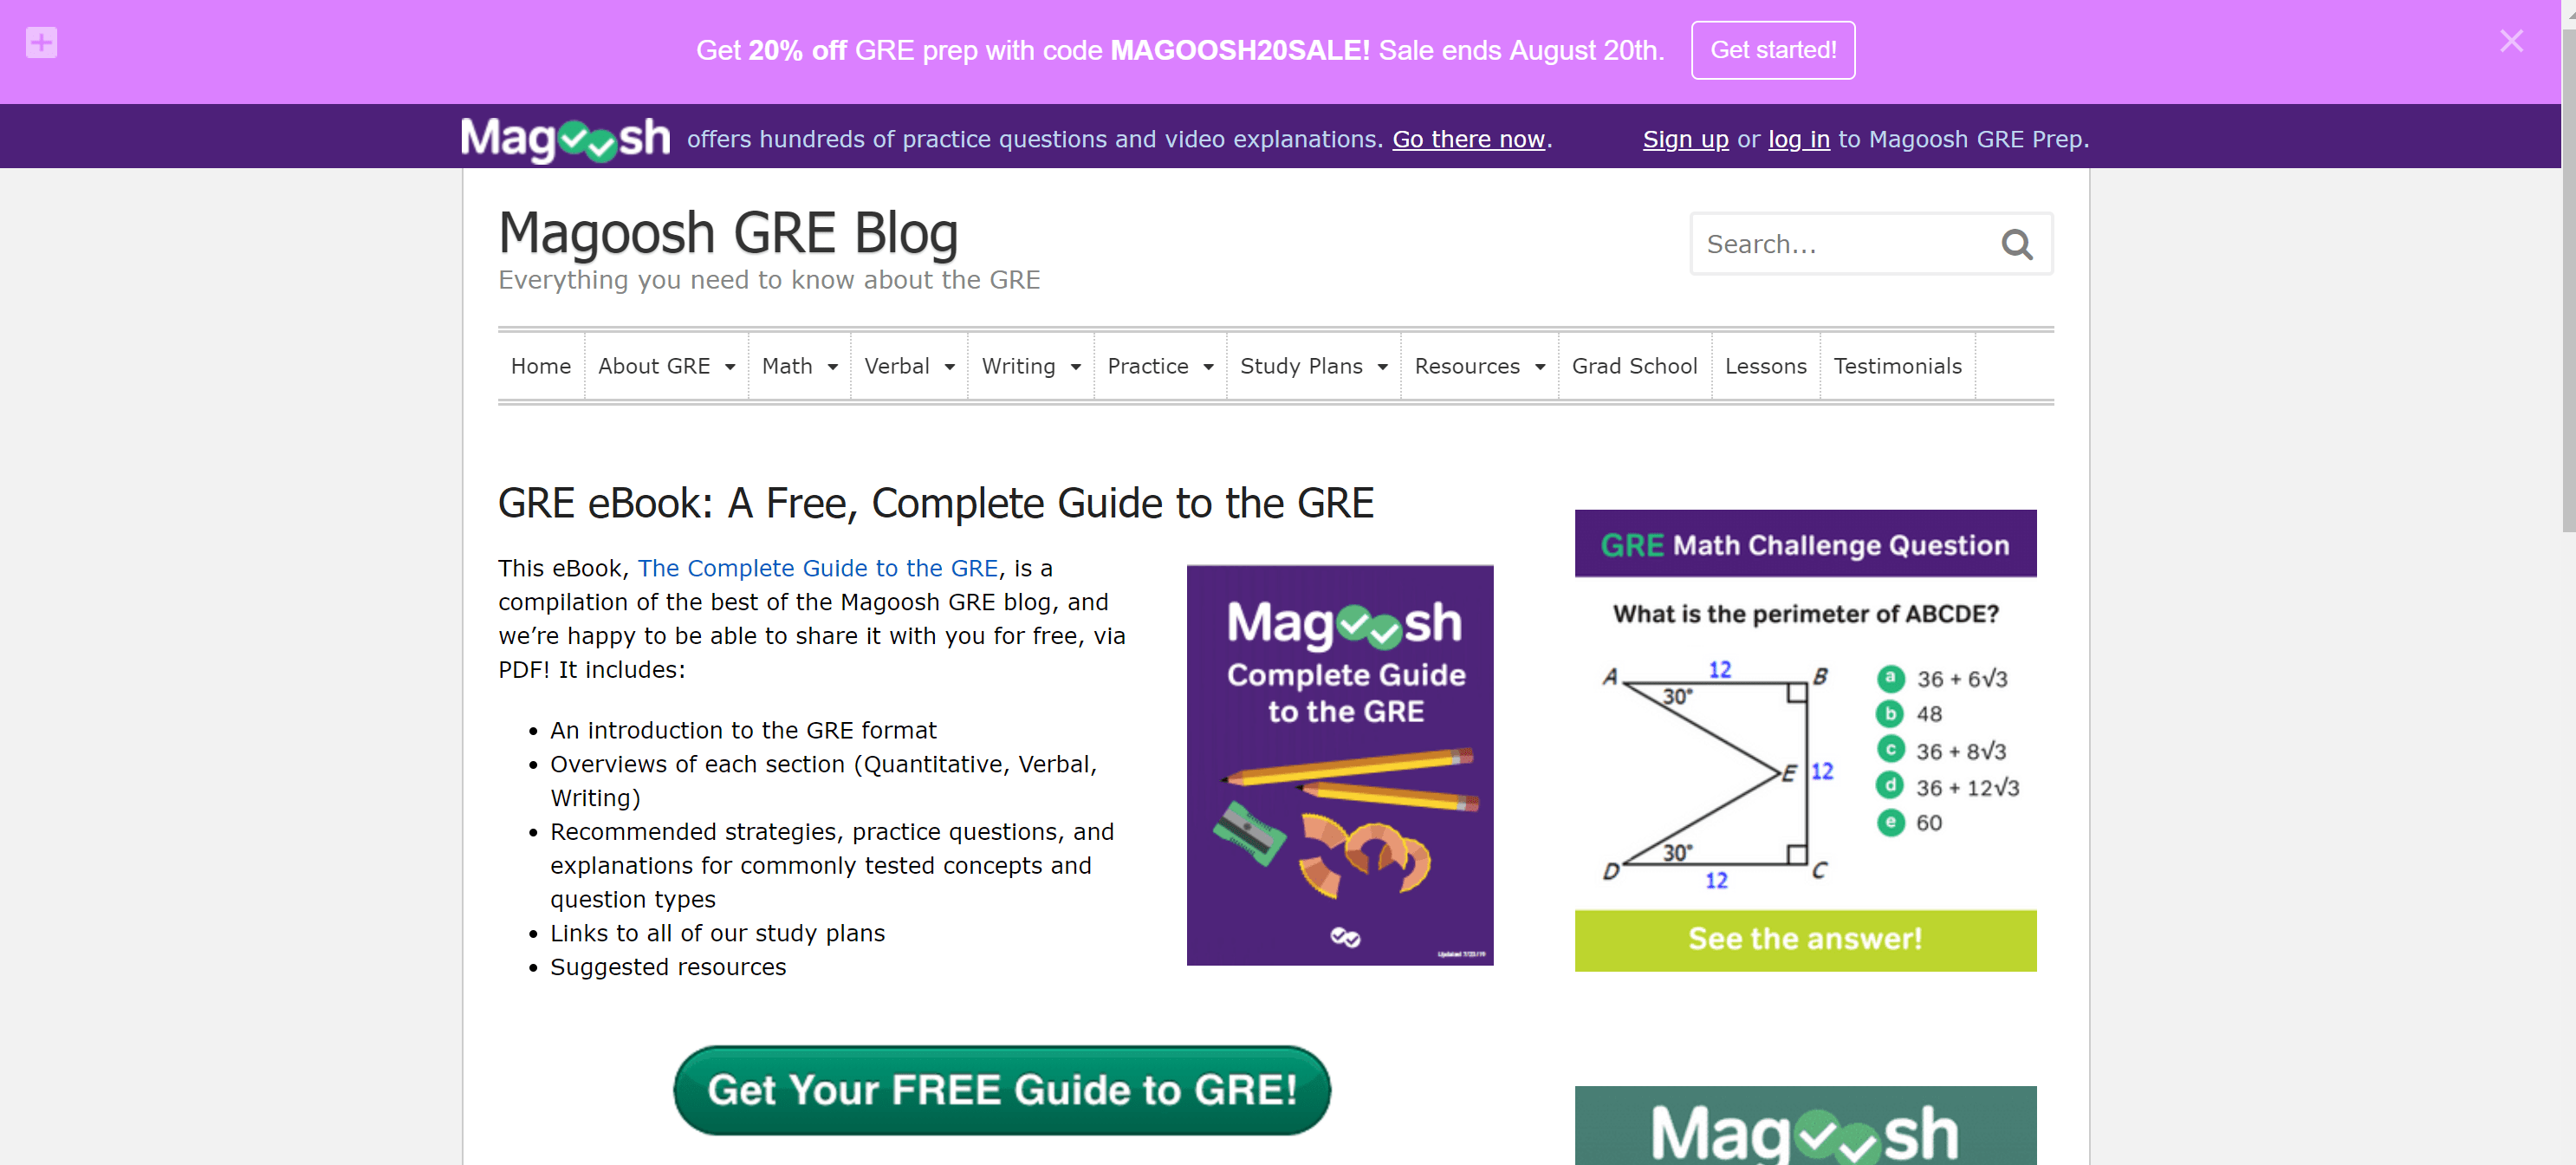 Do Magoosh Flashcards Appear On Gre